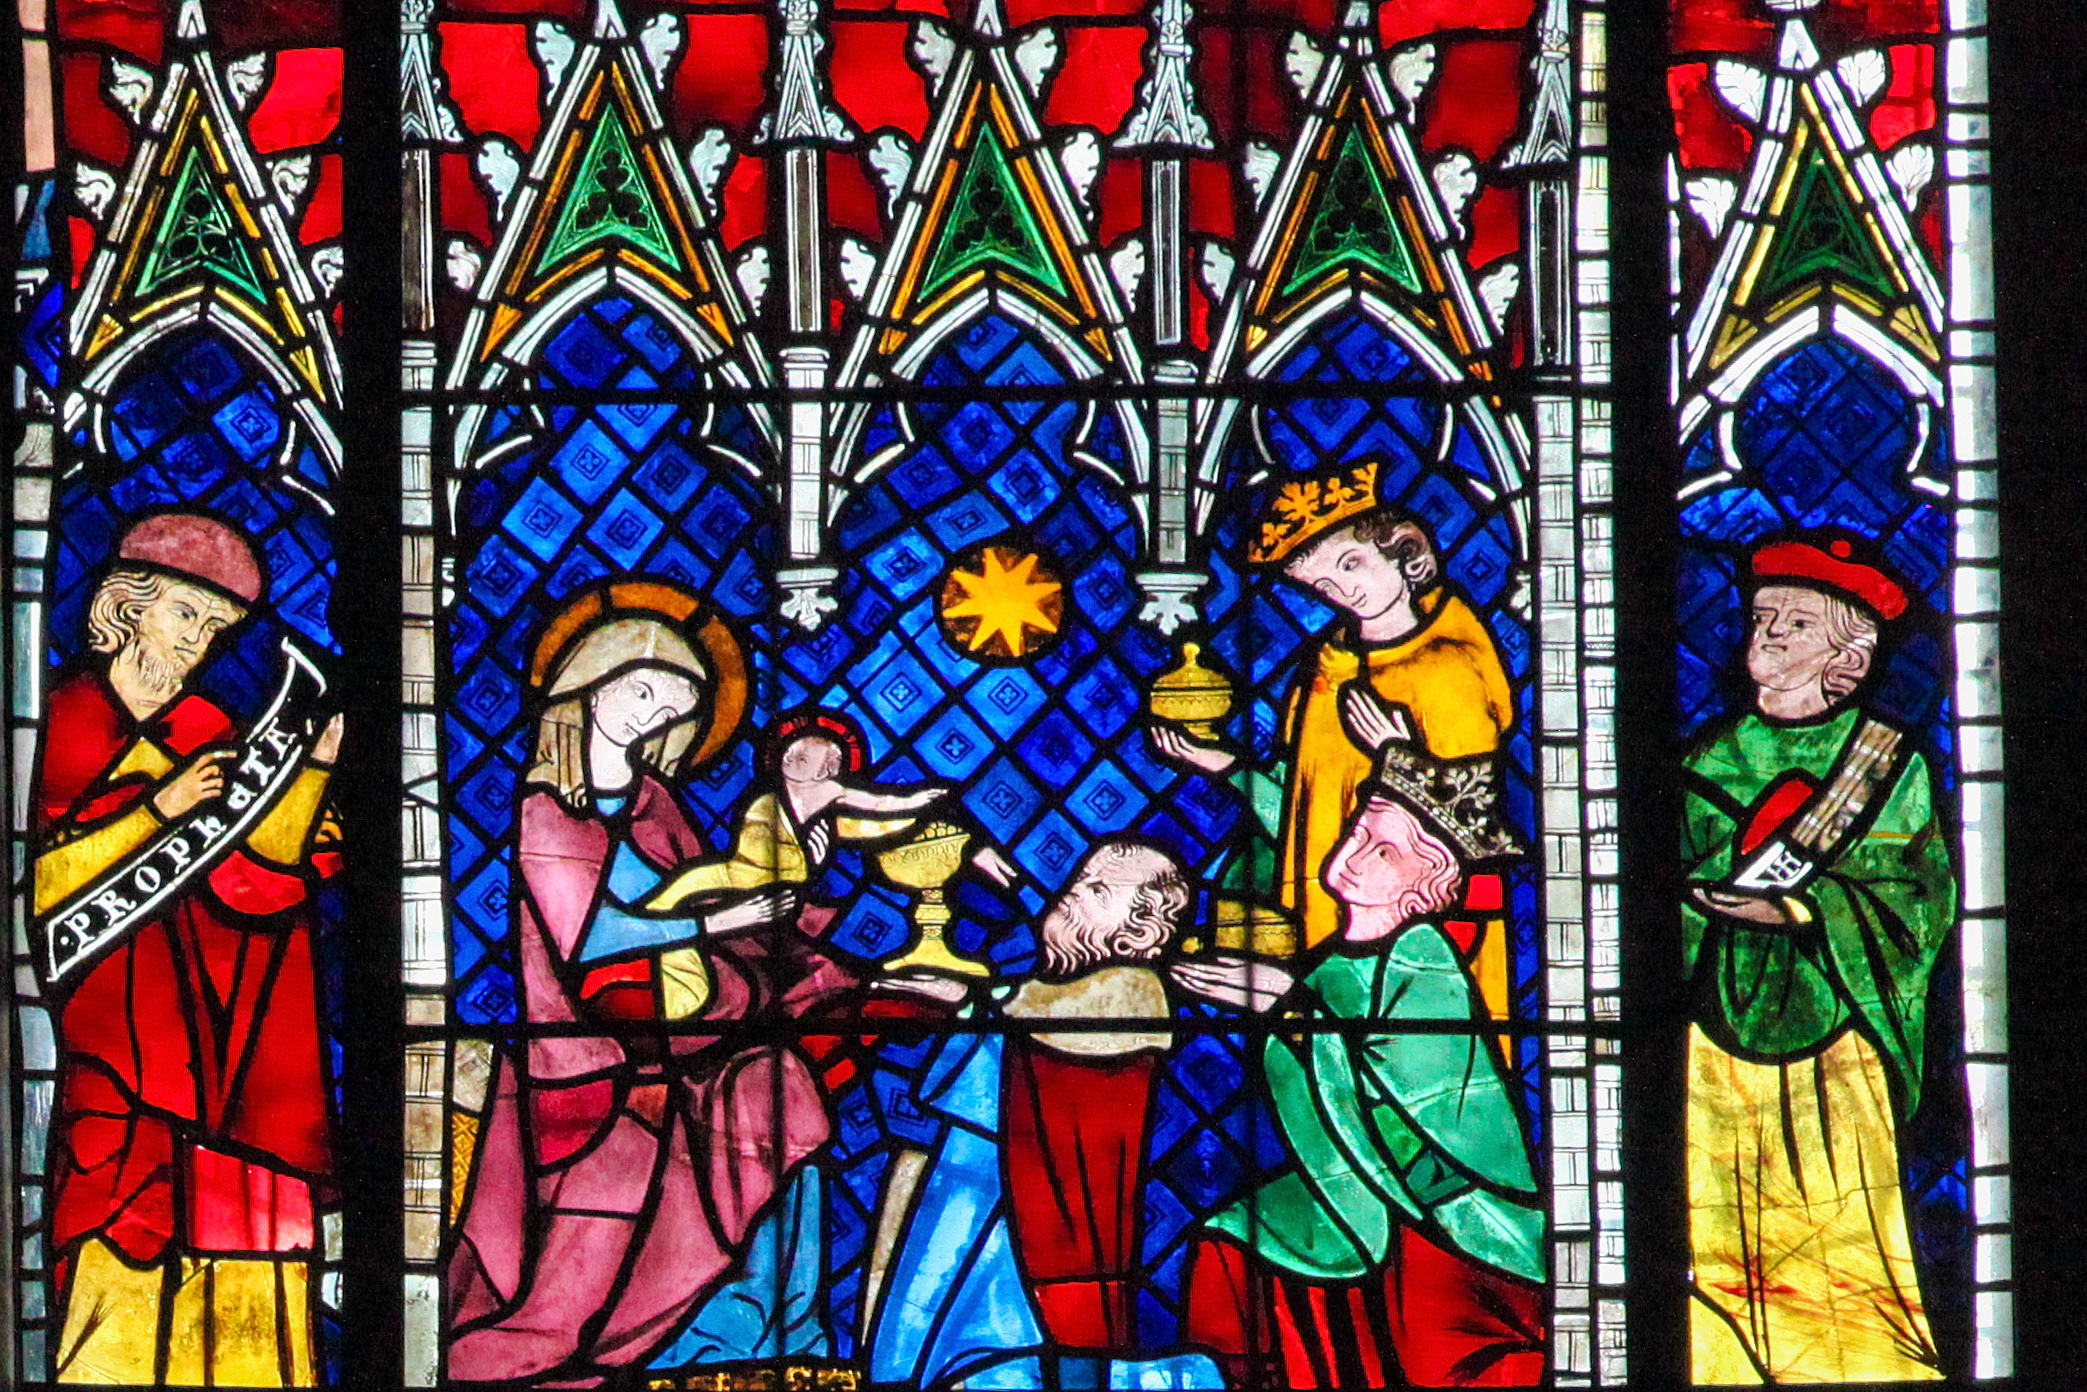 Stained glass depicting the Adoration of the Magi in the cathedral of Strasbourg, France